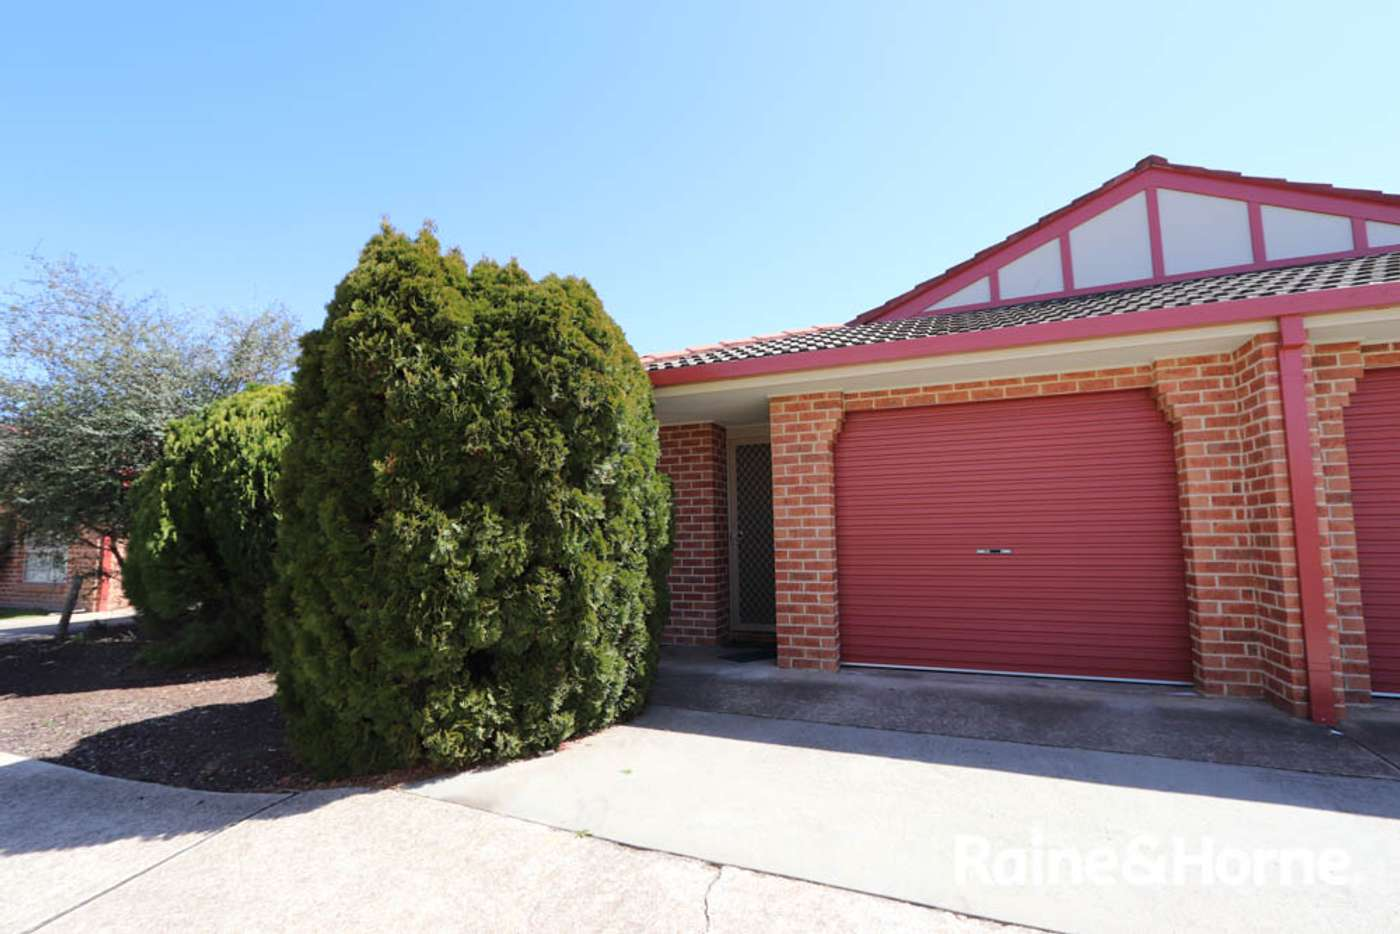 Main view of Homely unit listing, 1/53A Brilliant, Bathurst NSW 2795